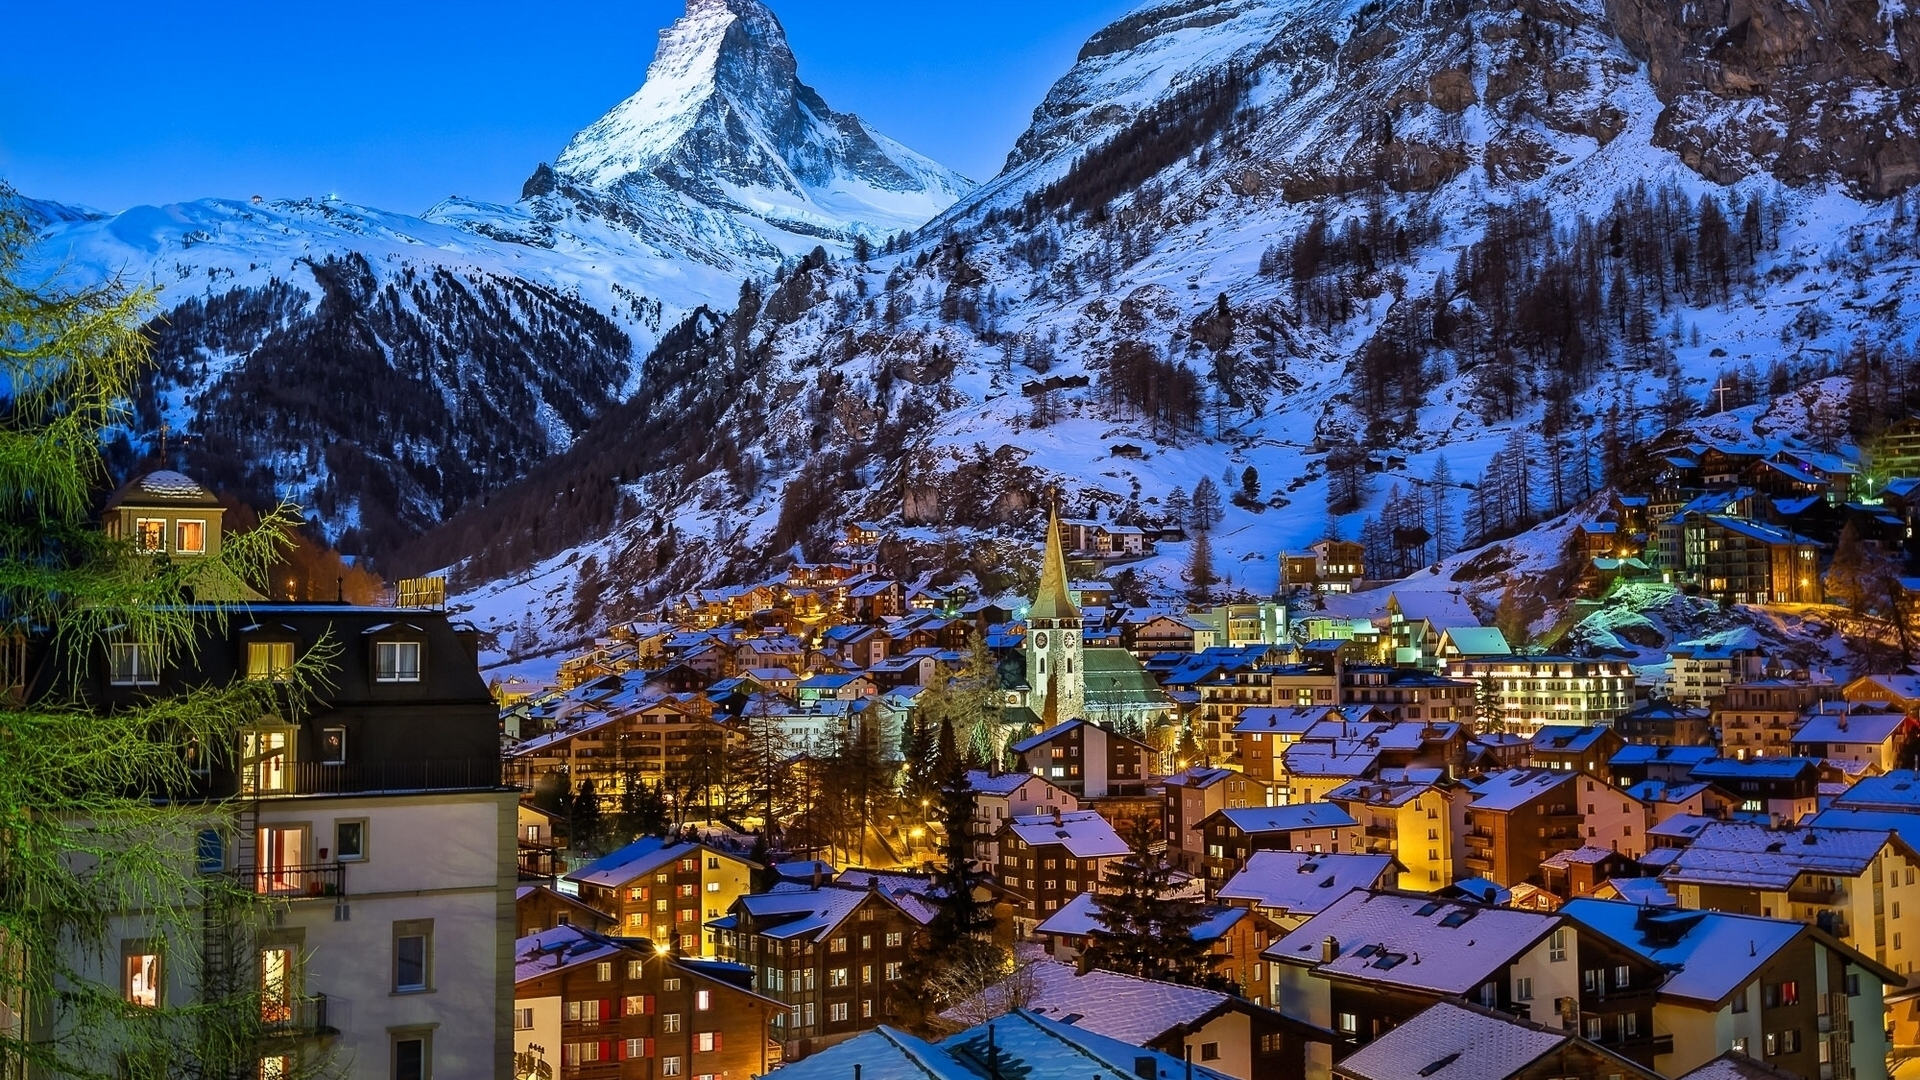 Cute 3d Cartoon Wallpapers Winter At Zermatt Valley Switzerland